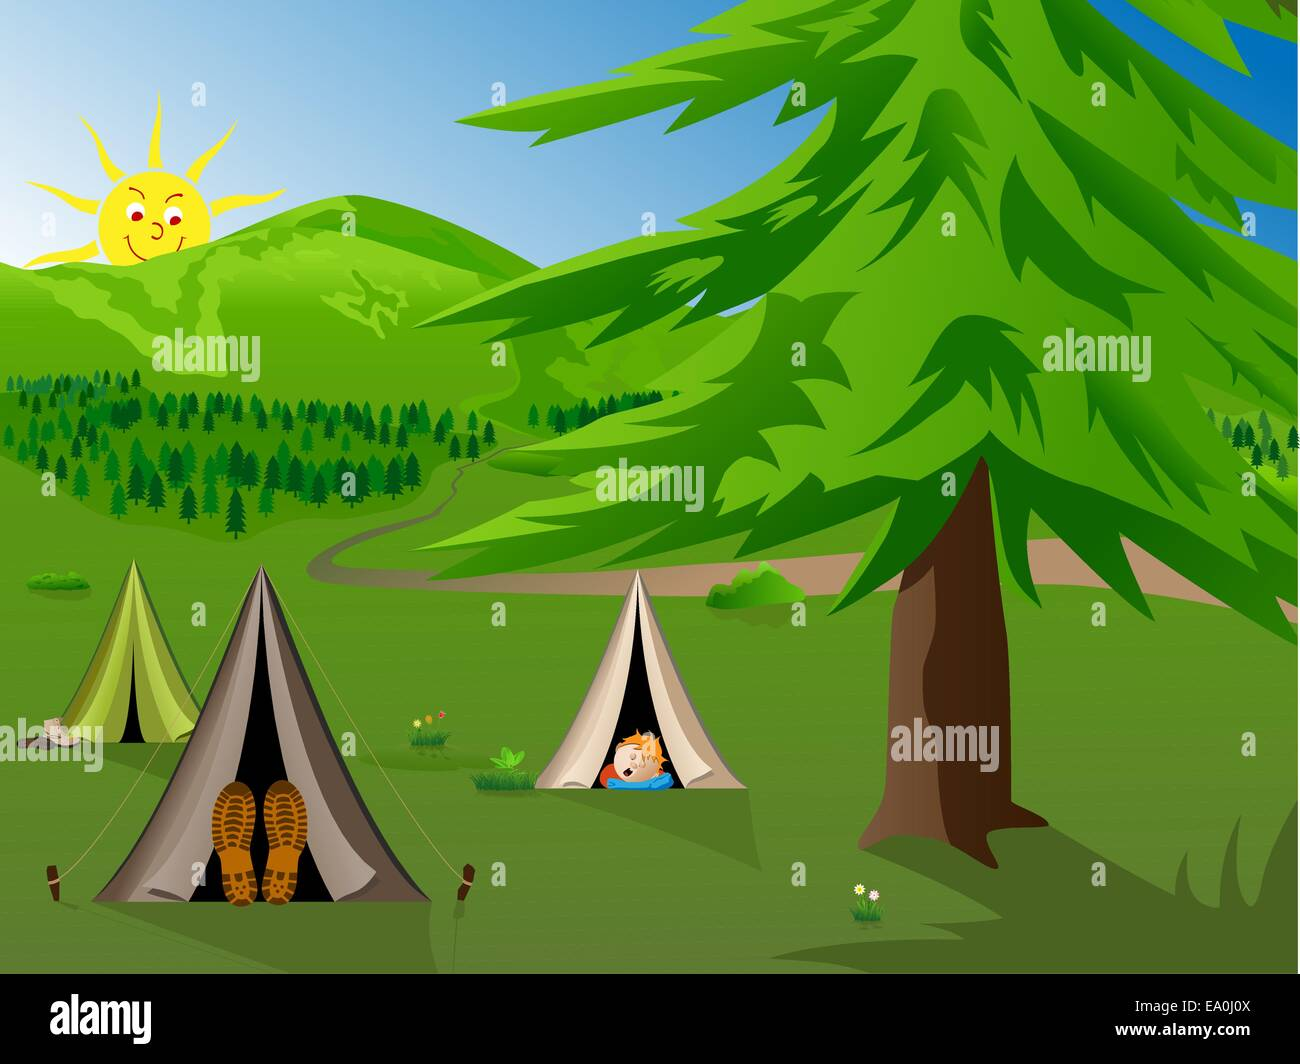 vector cartoon illustration of kids camping in the mountains - Stock Vector